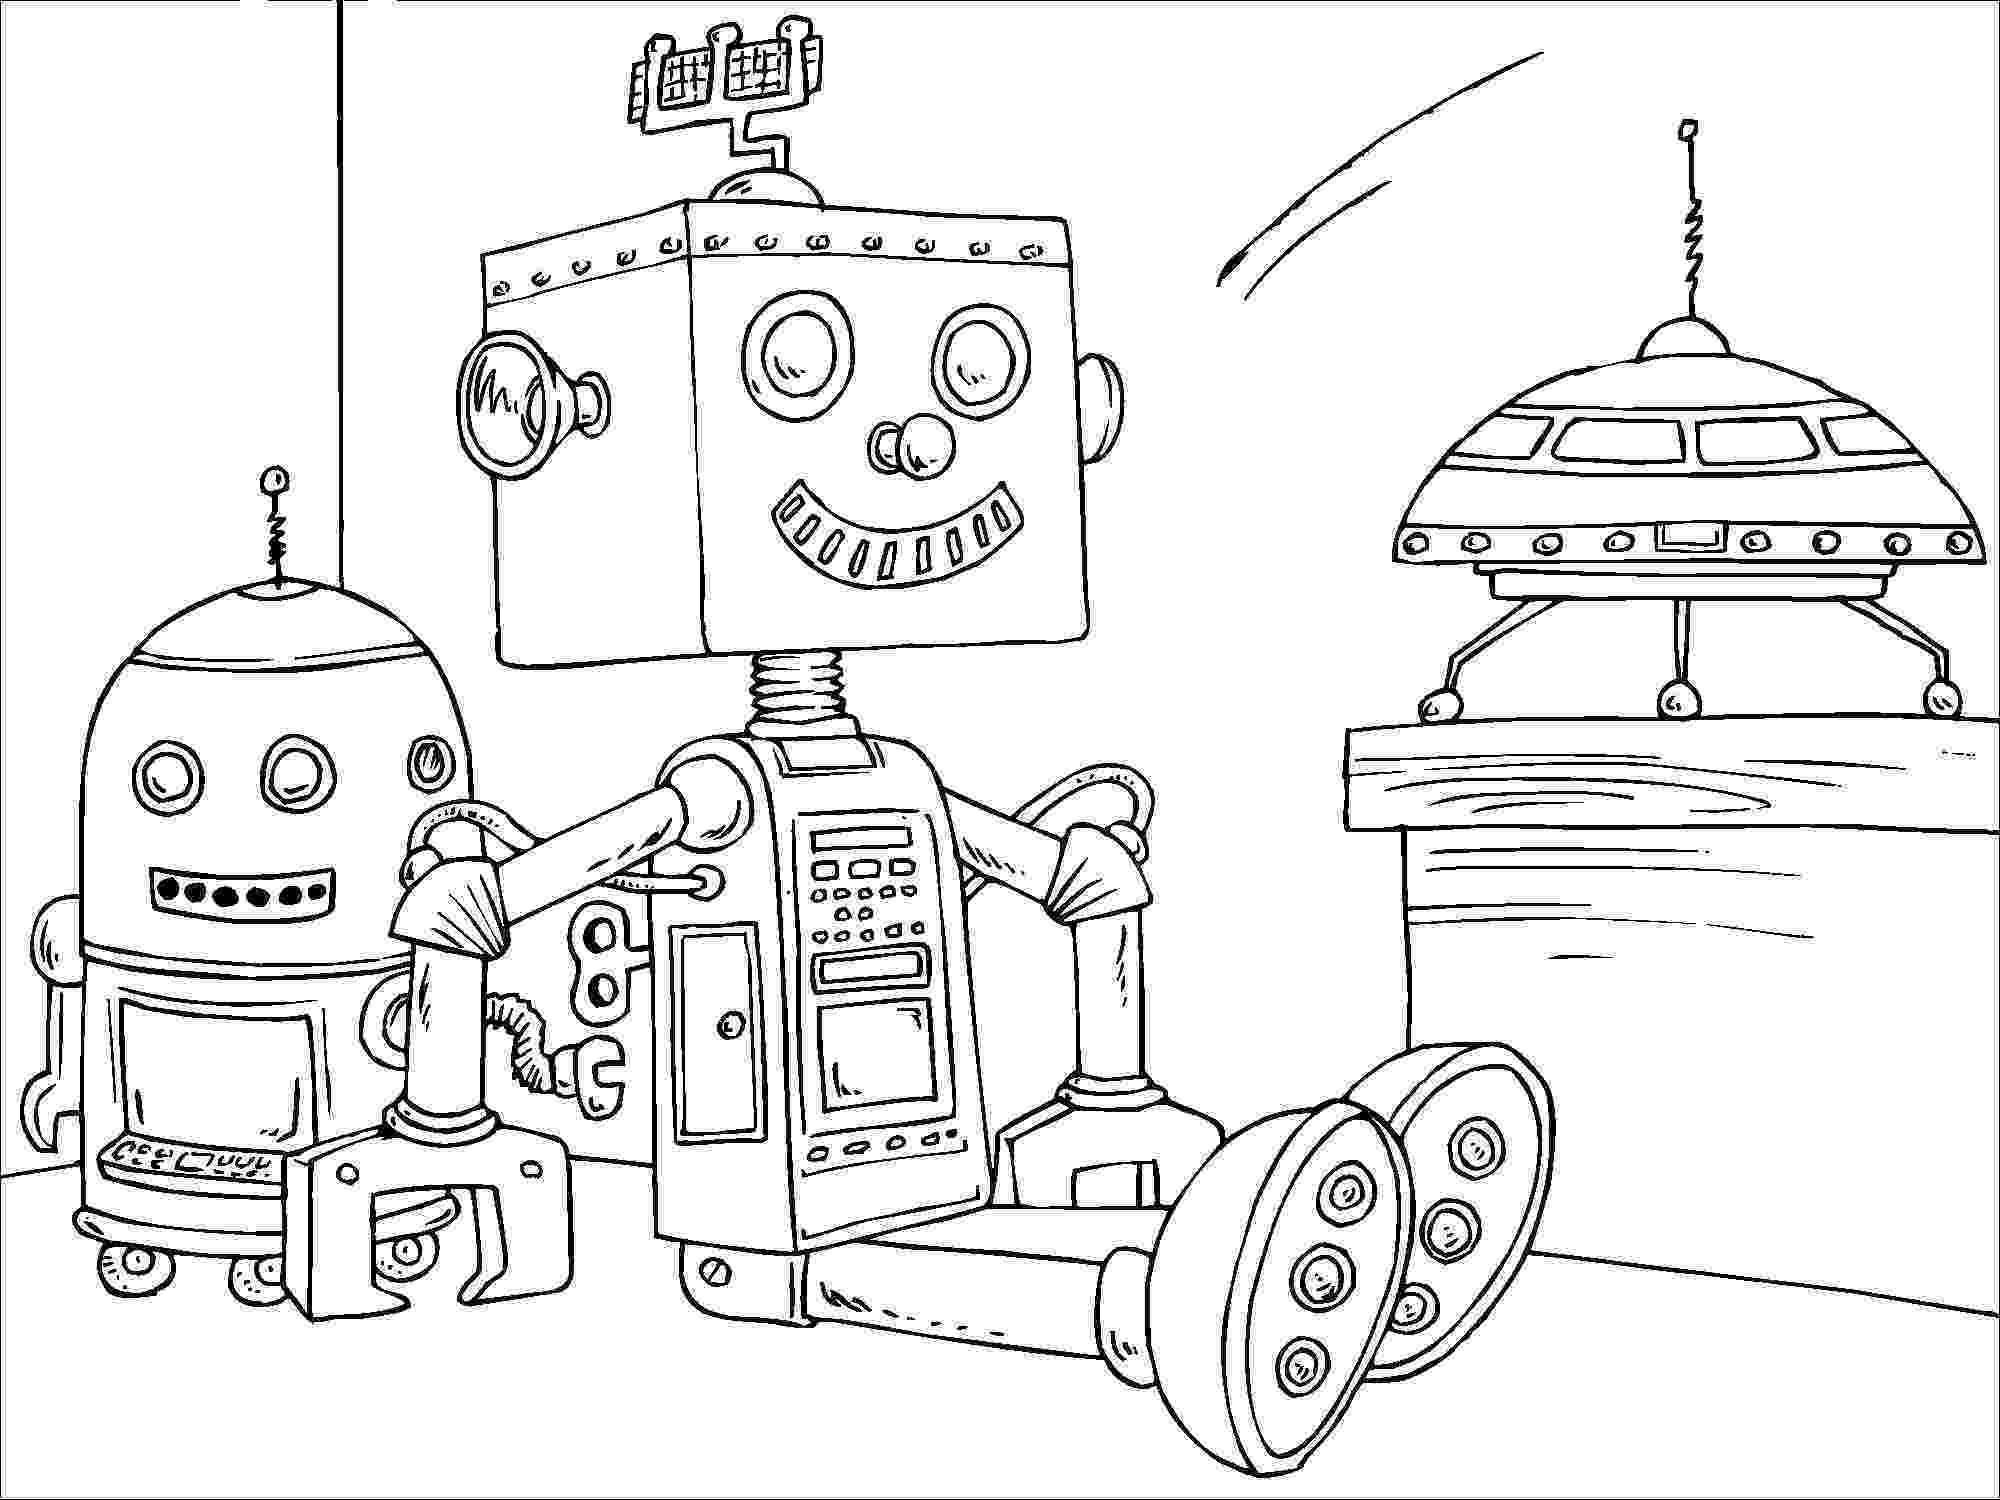 robot coloring sheets witty title coming soon october 2011 sheets robot coloring